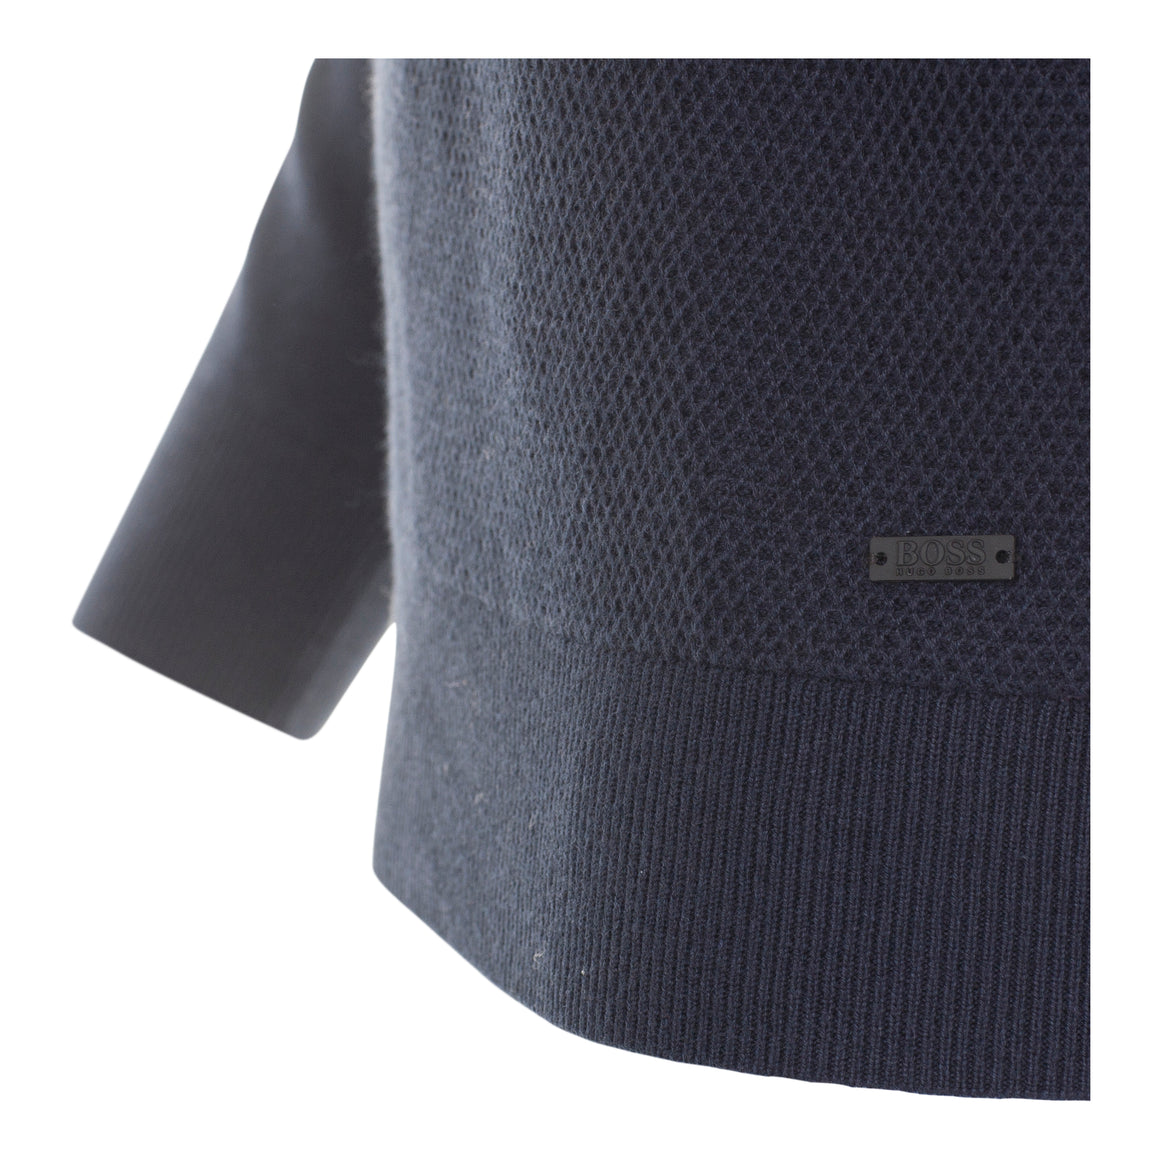 Agakop Knitwear for Men in Navy